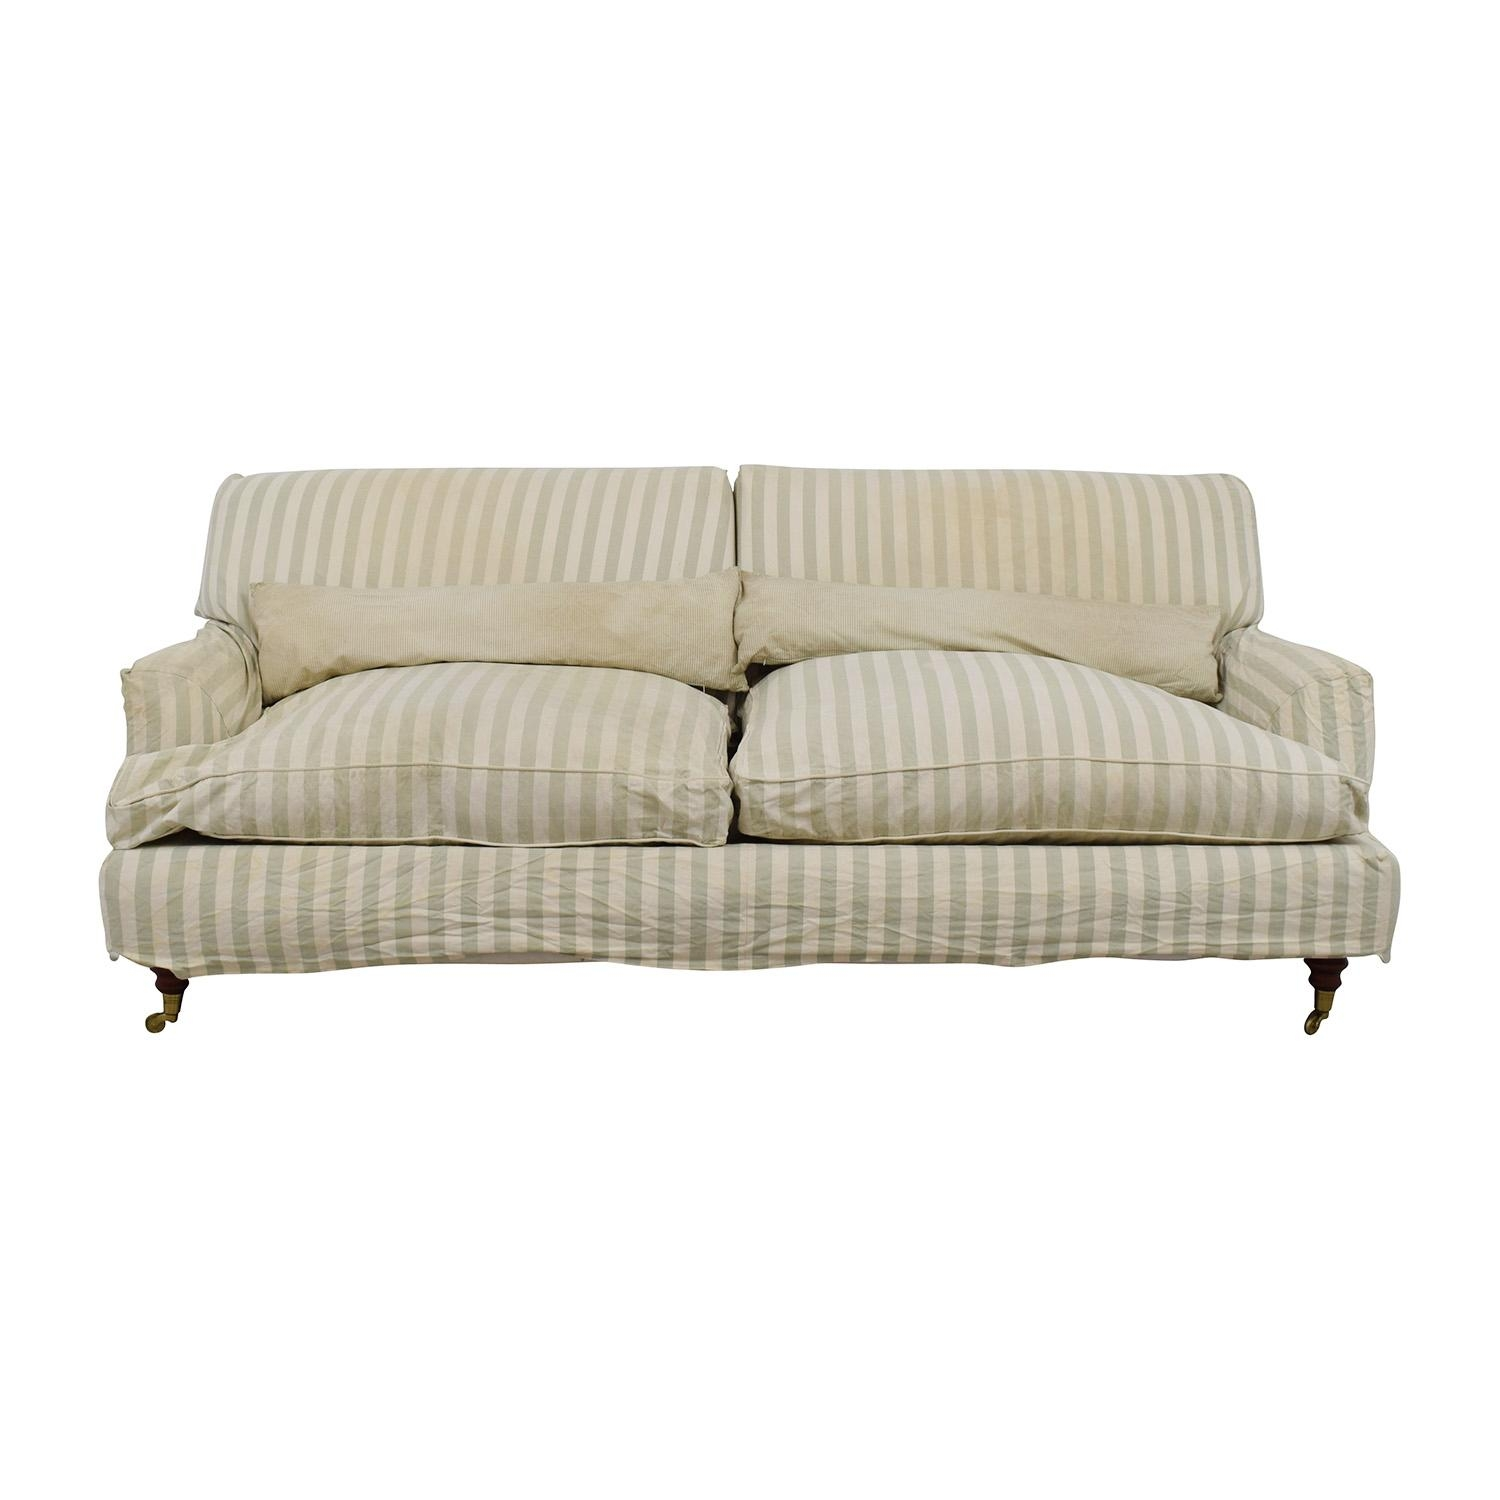 85% Off - Green And White Striped English Roll-Arm Sofa / Sofas for Classic English Sofas